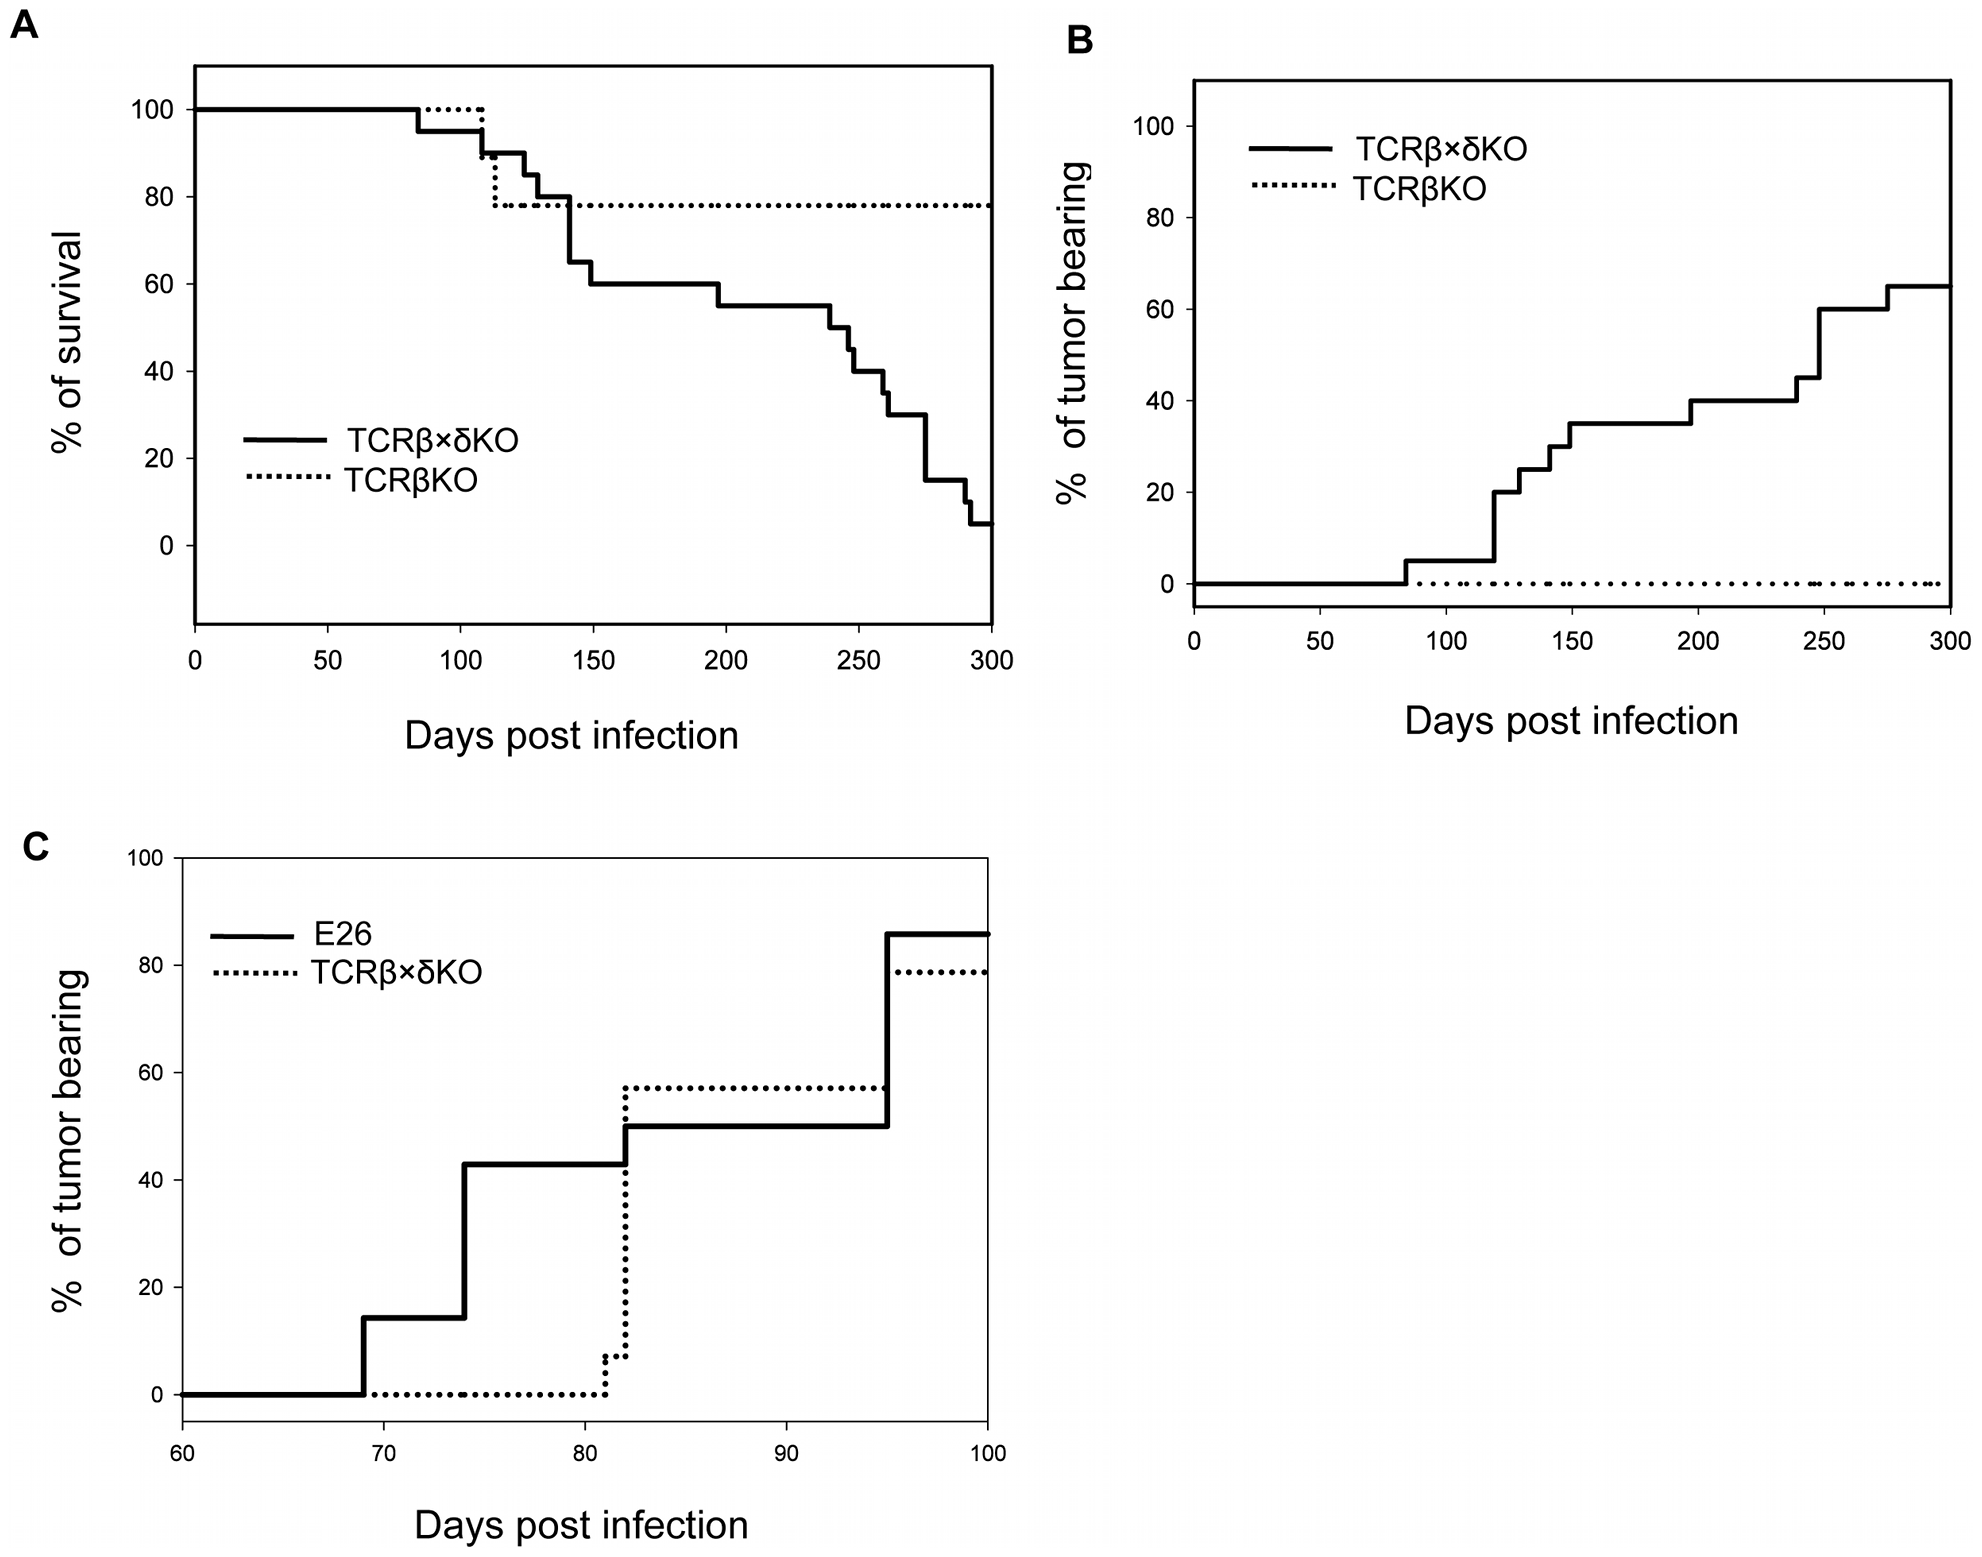 Survival and tumor incidence of PyV-infected TCRβ KO, TCRβ×δ KO and E26 mice.